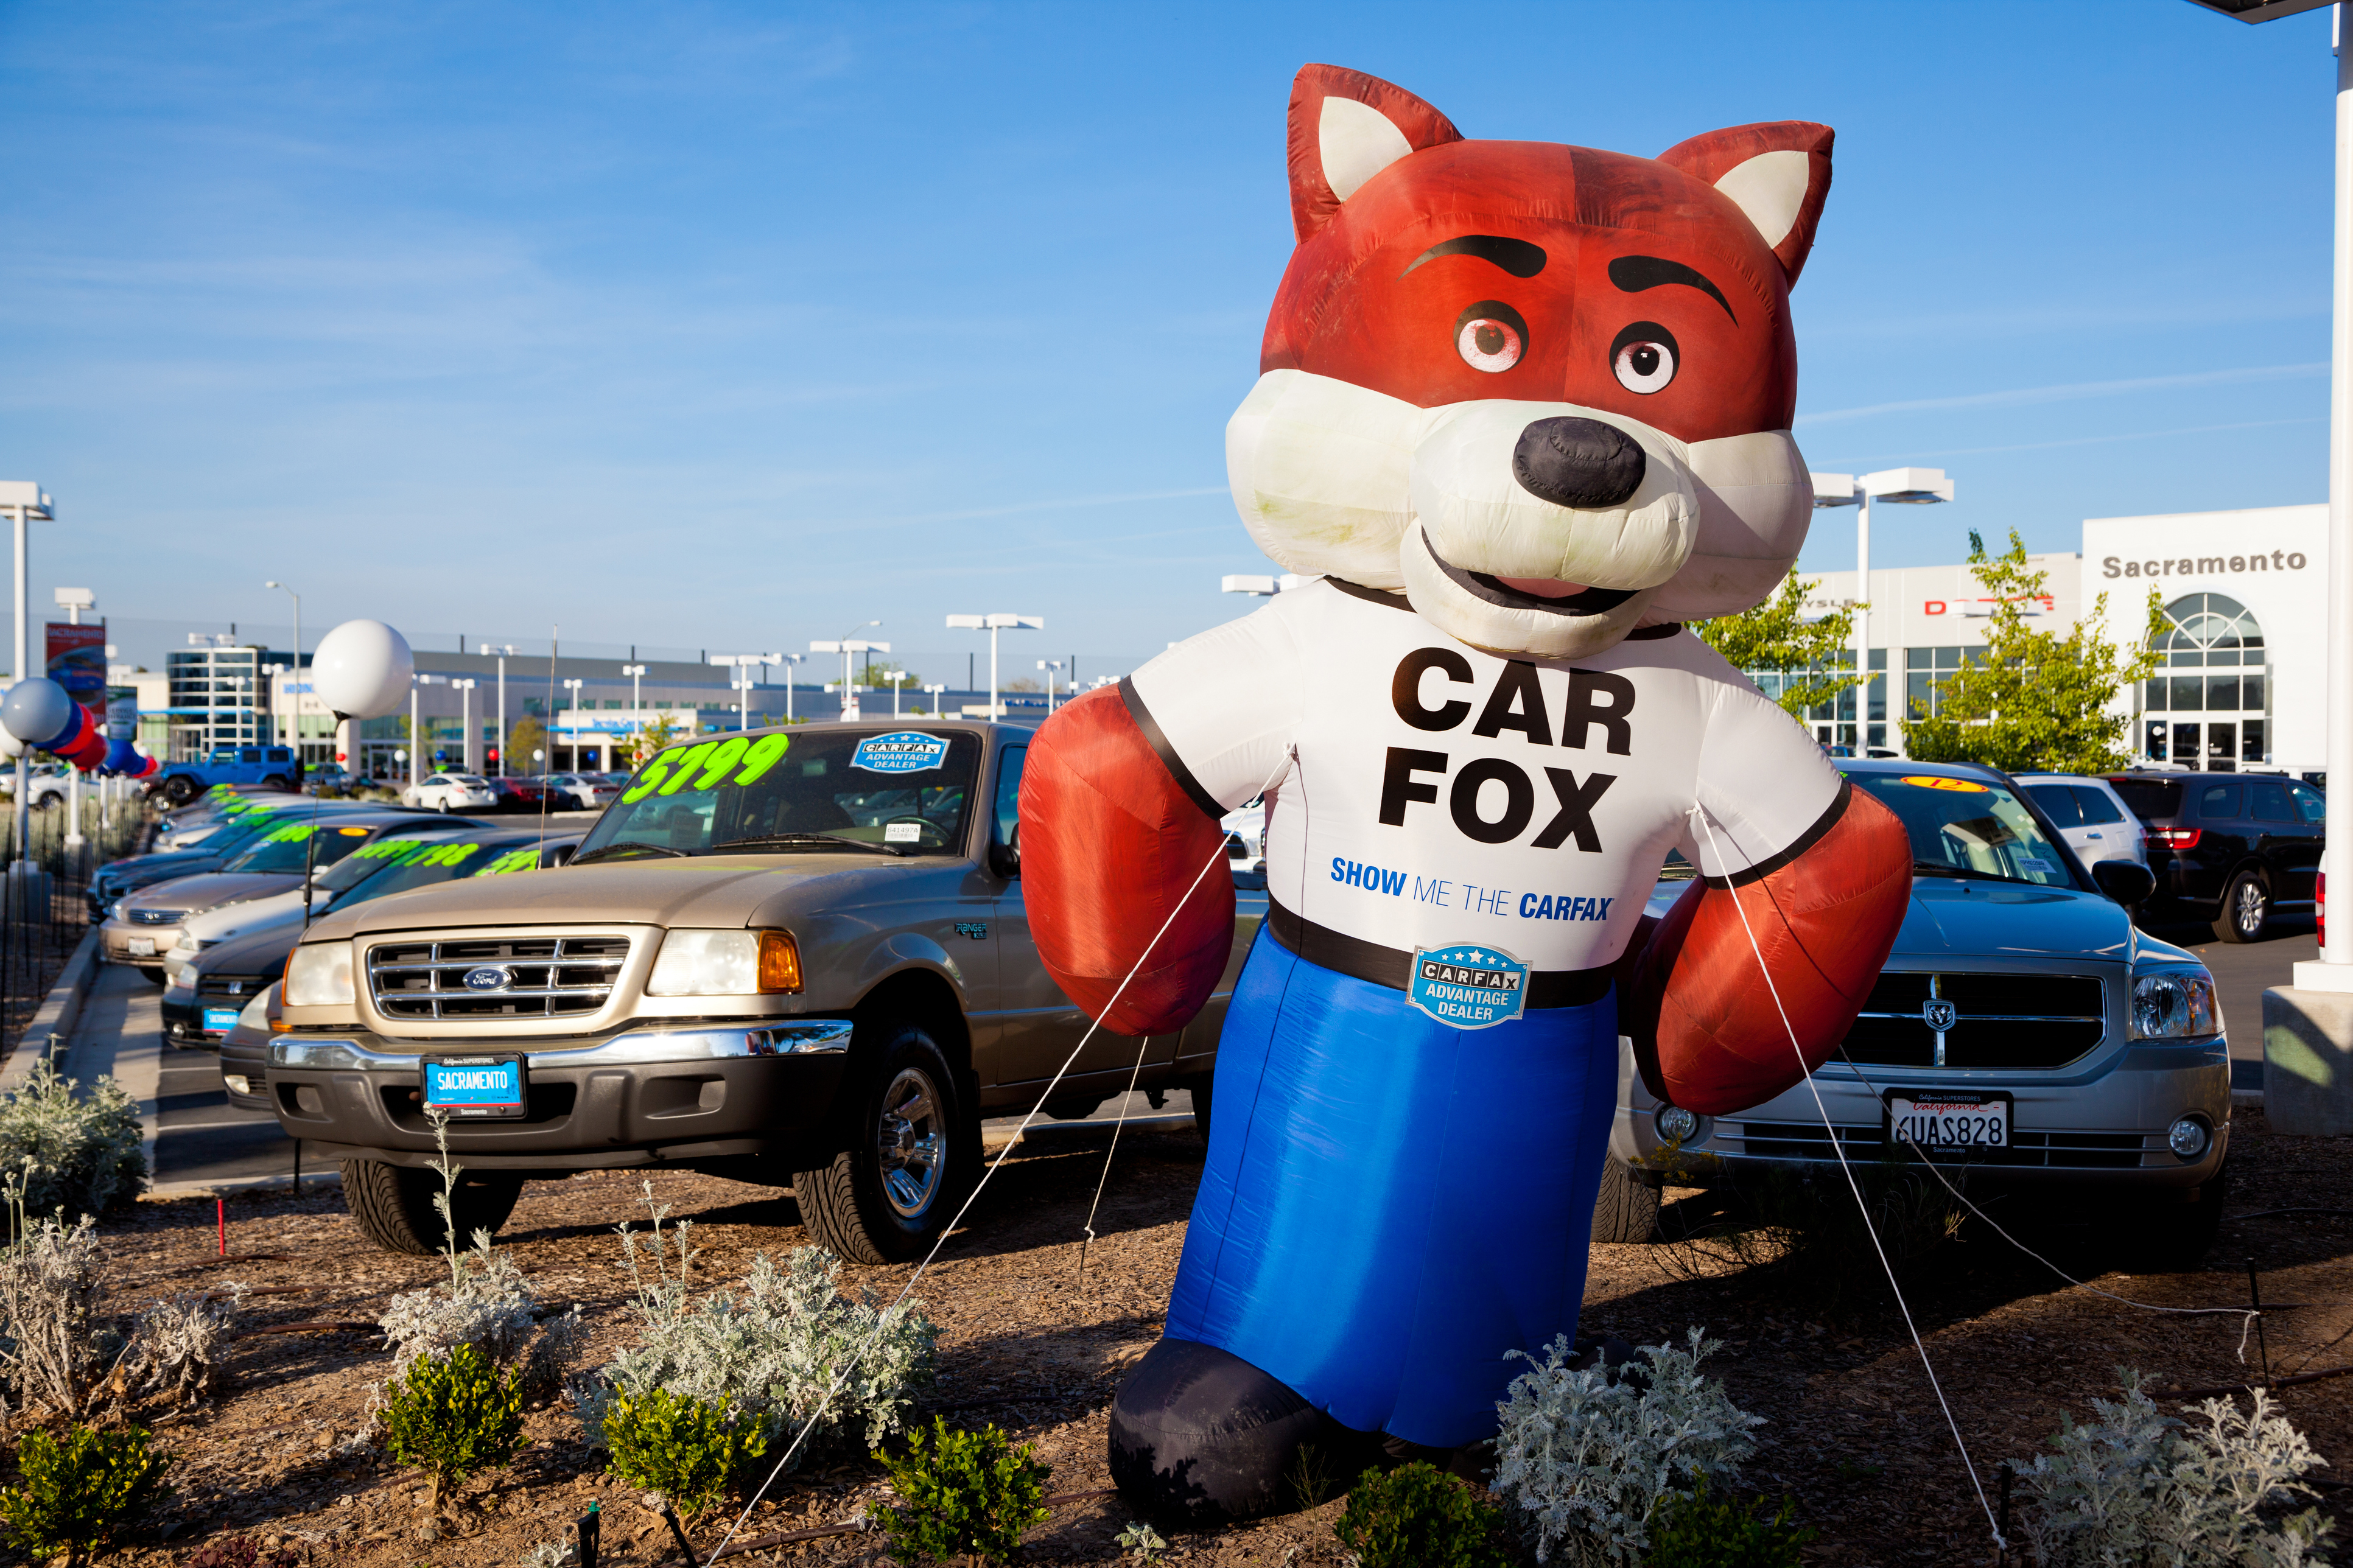 Carfax Special Offers Luxury asa Offers Sample Vendor Data Pact after Carfax Leak Produces Irate